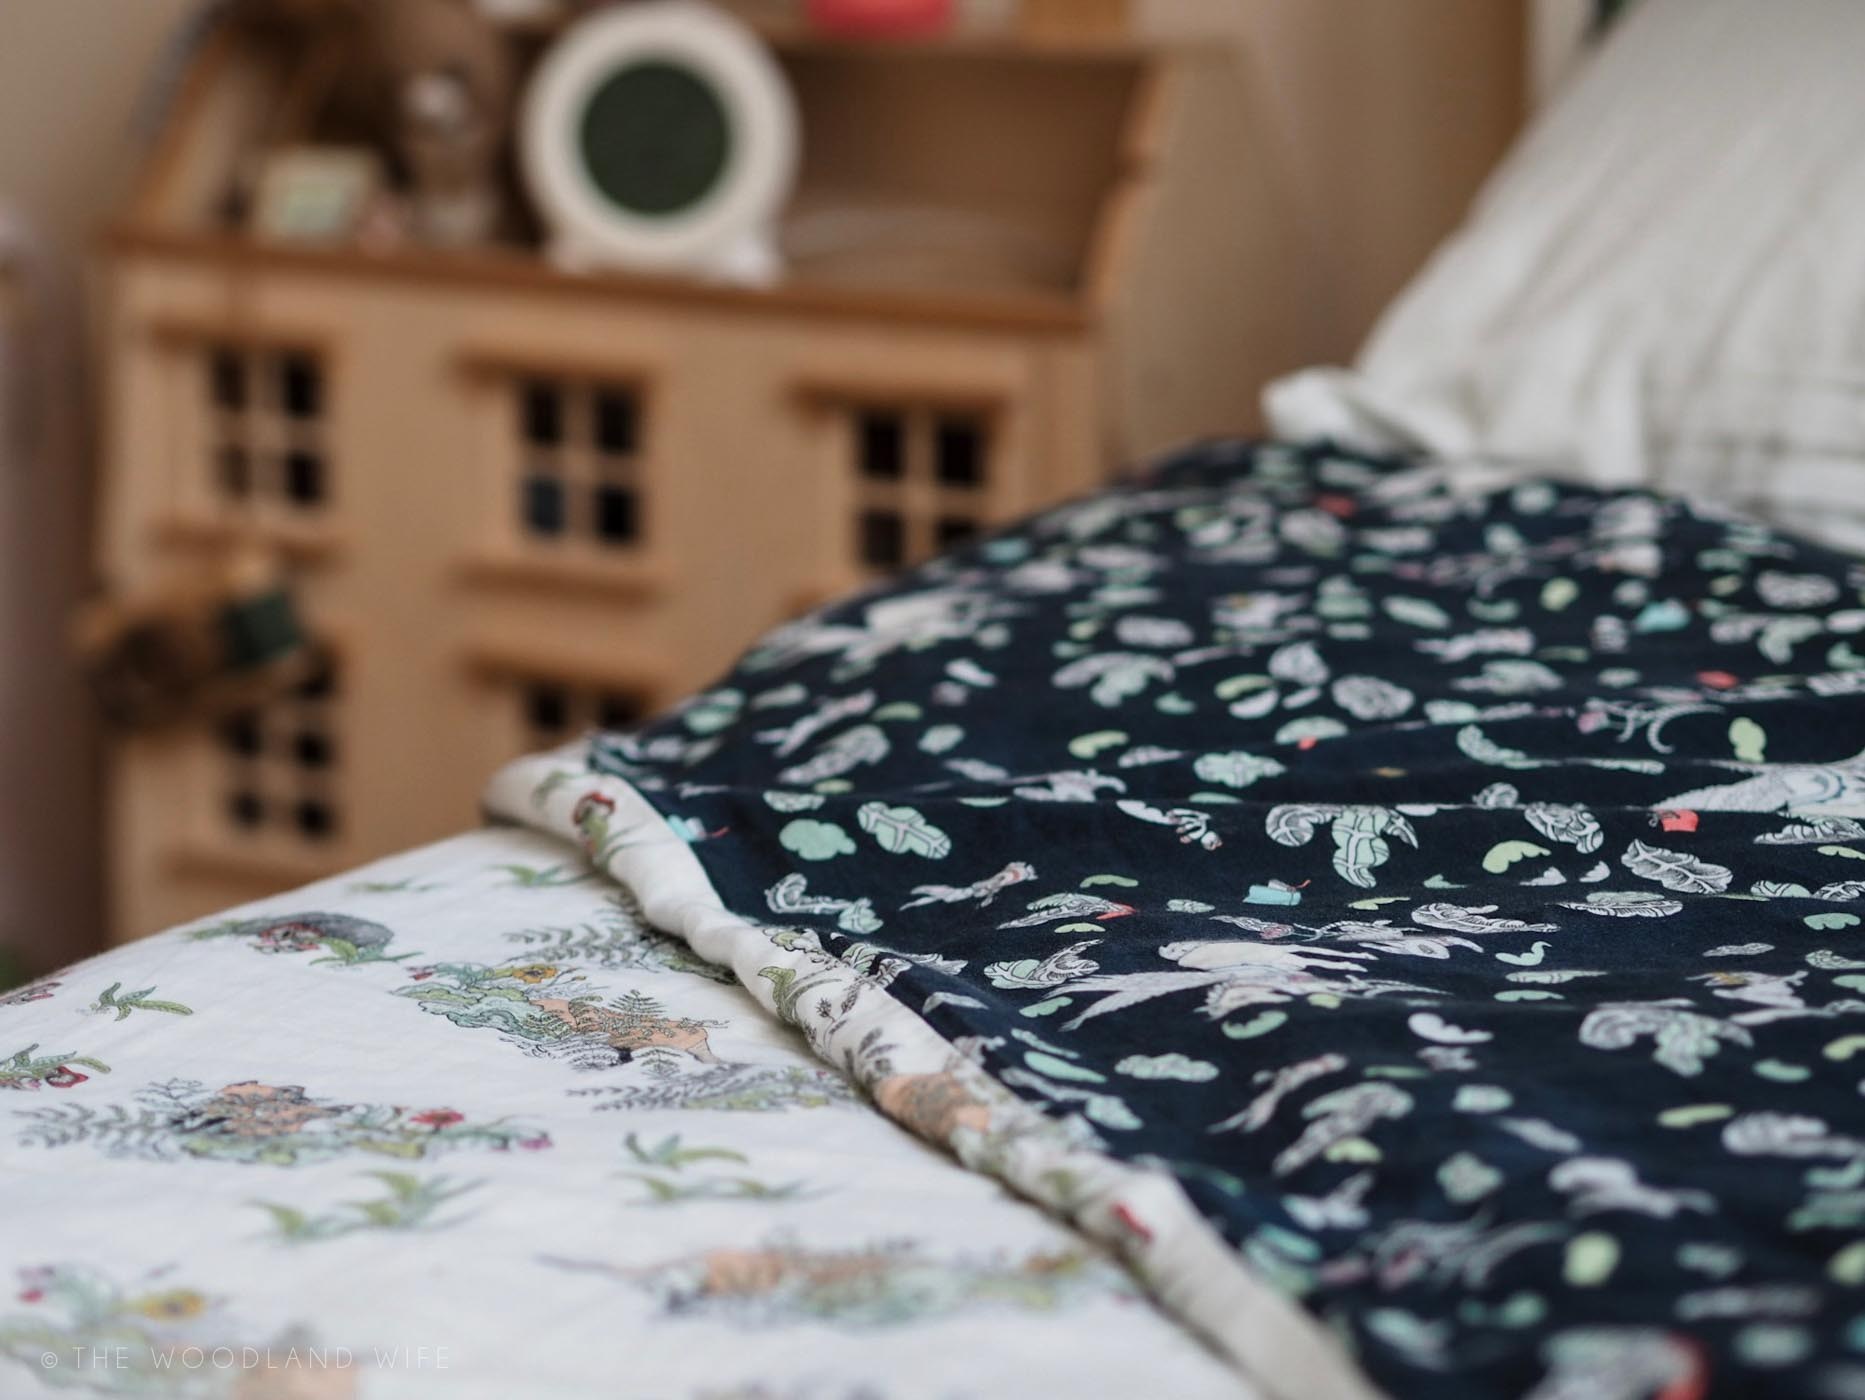 The Woodland Wife - Forivor - Ethical & Organic children's bedding - inspire magical sleep through nature and storytelling